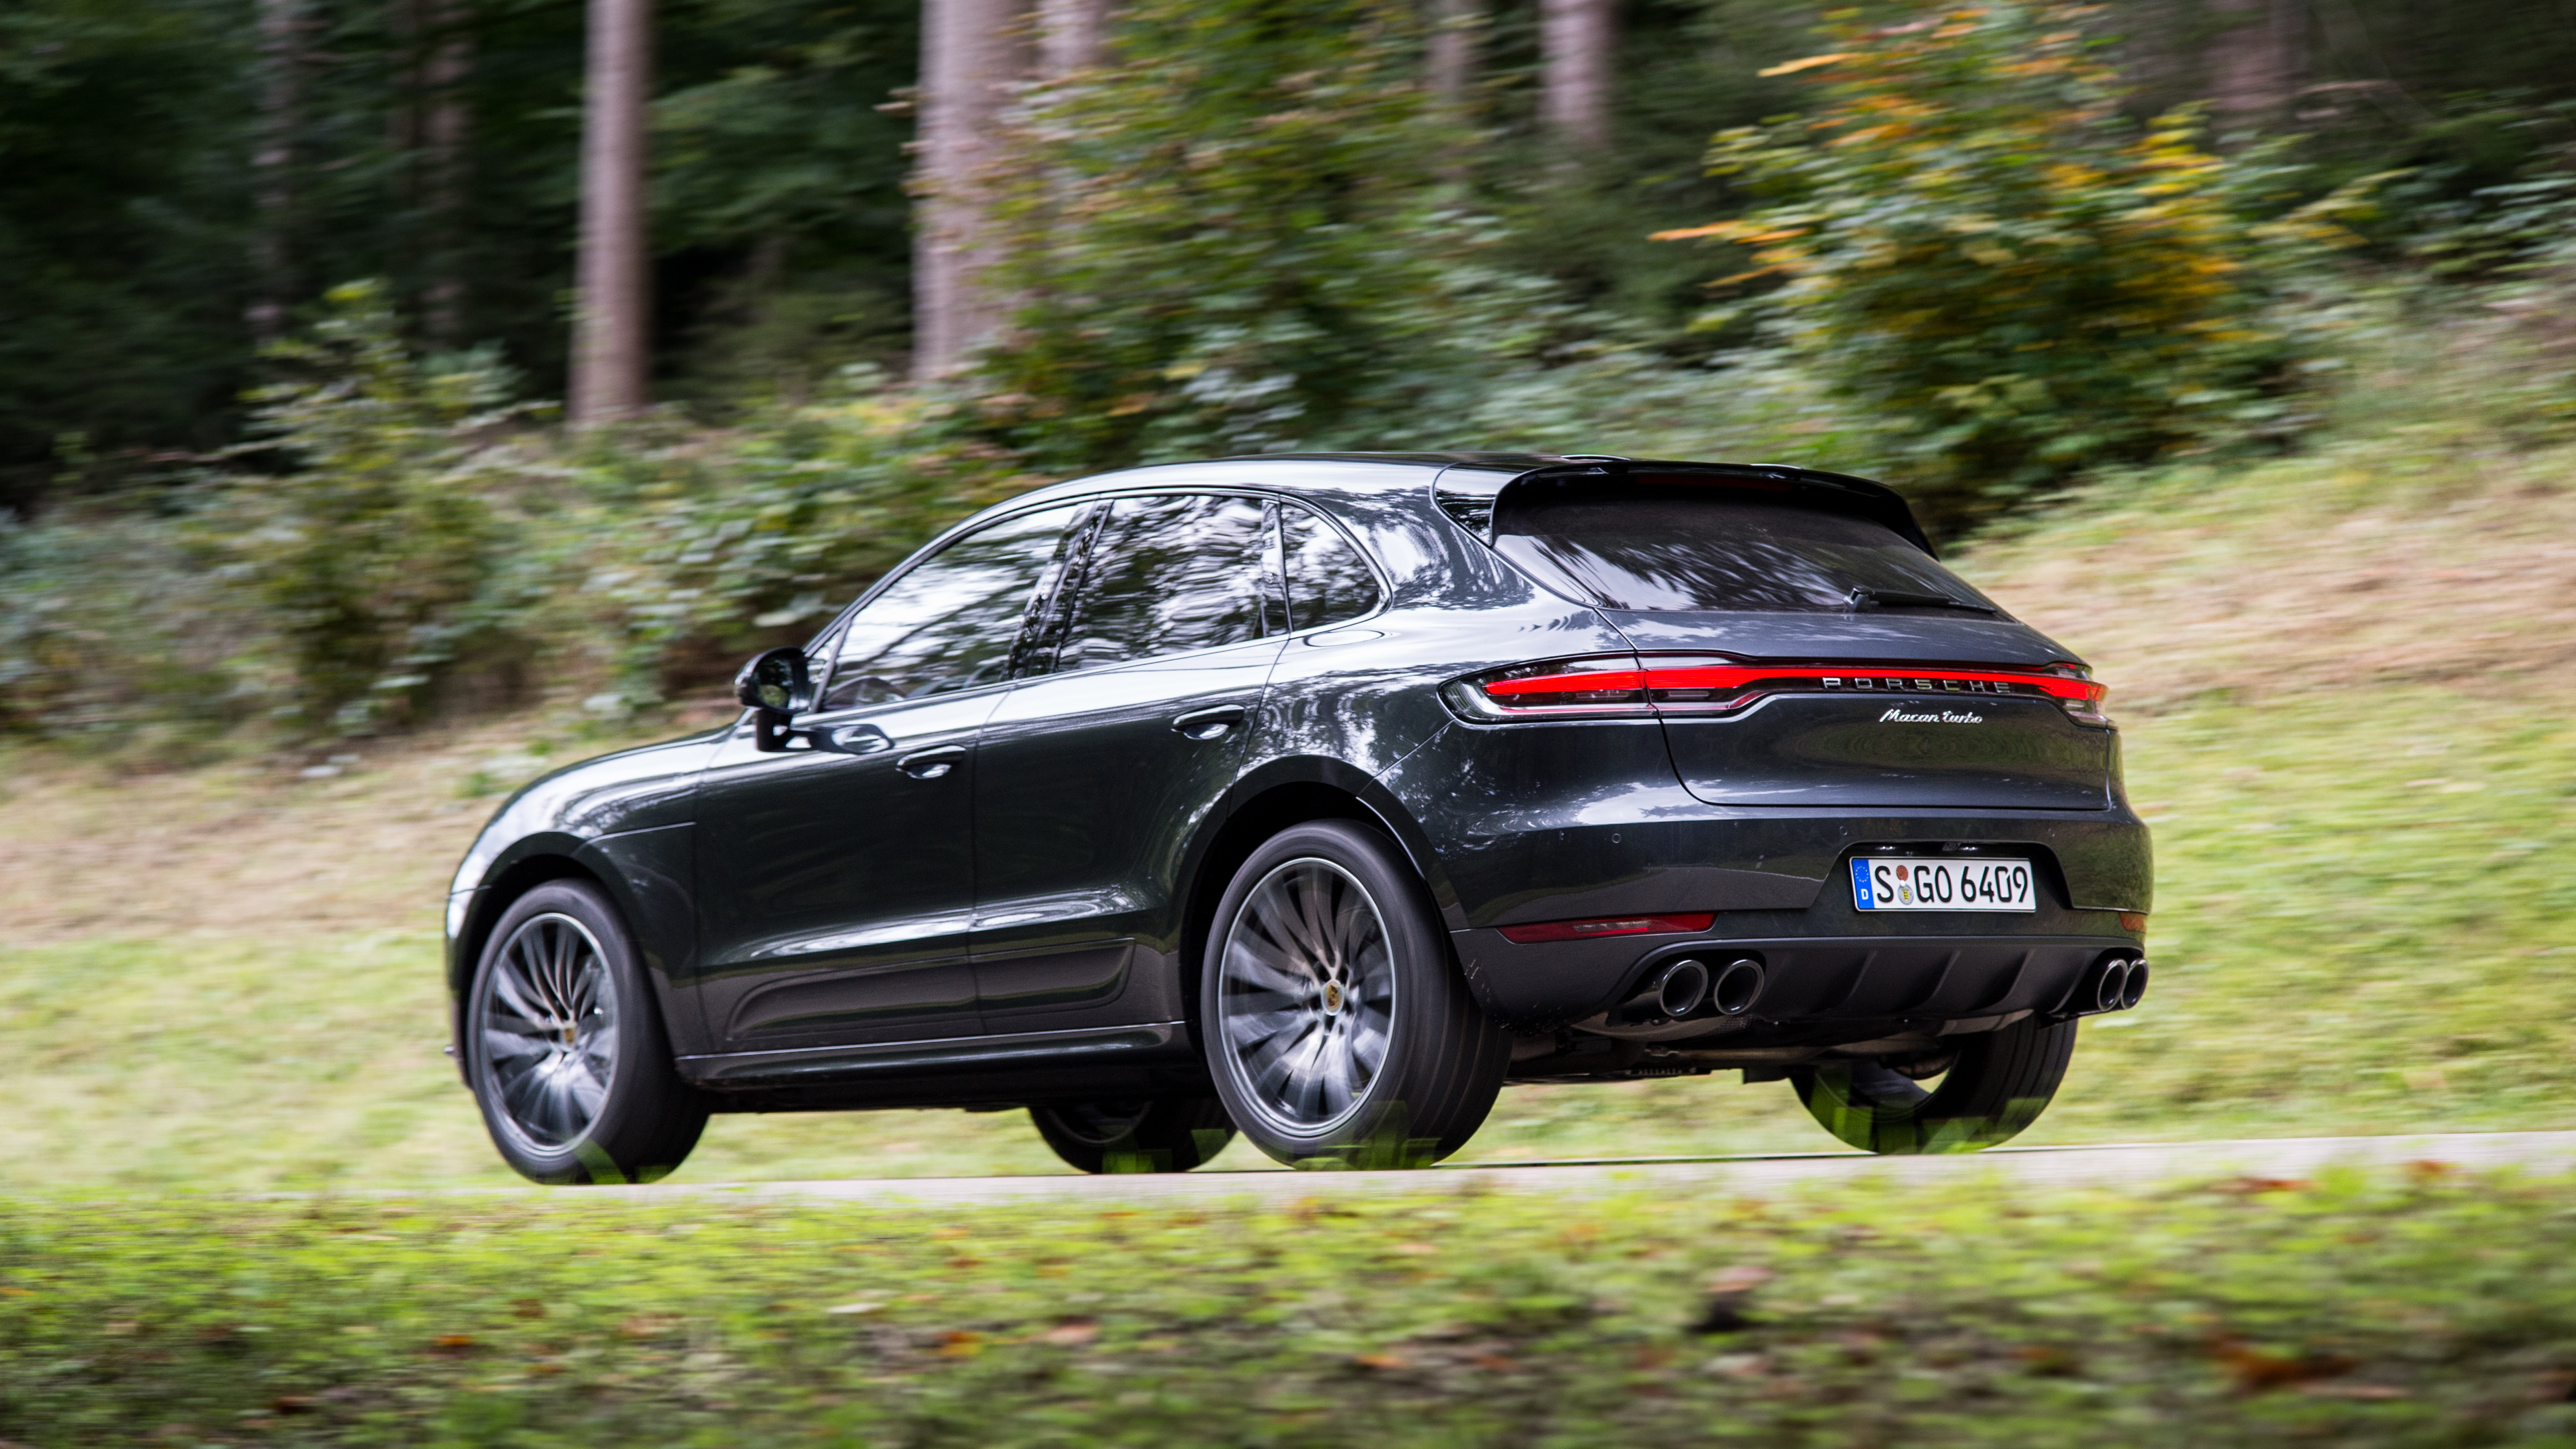 2020 Porsche Macan Turbo First Drive | What's new ...